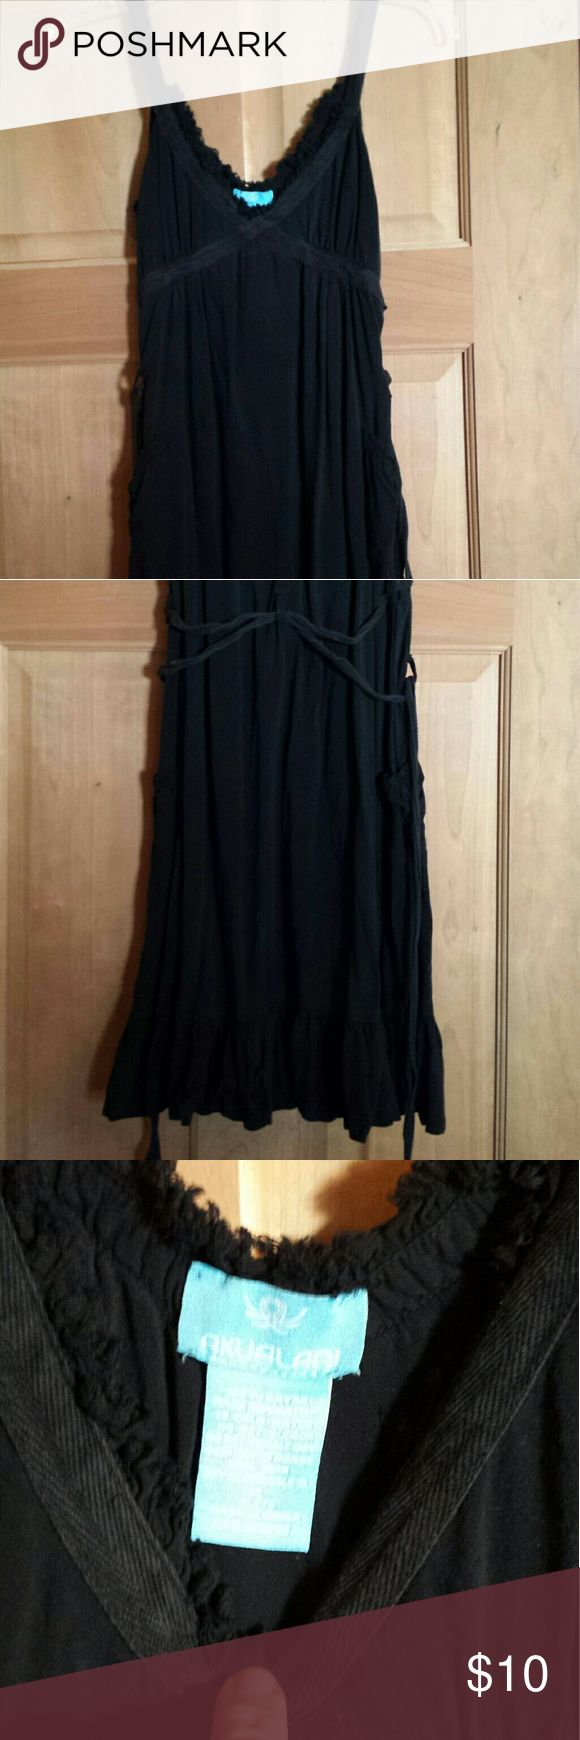 Akualani Black SunDress M Cotton black sundress, straps, criss-cross waist in back. Very cute. Akualani Dresses Mini